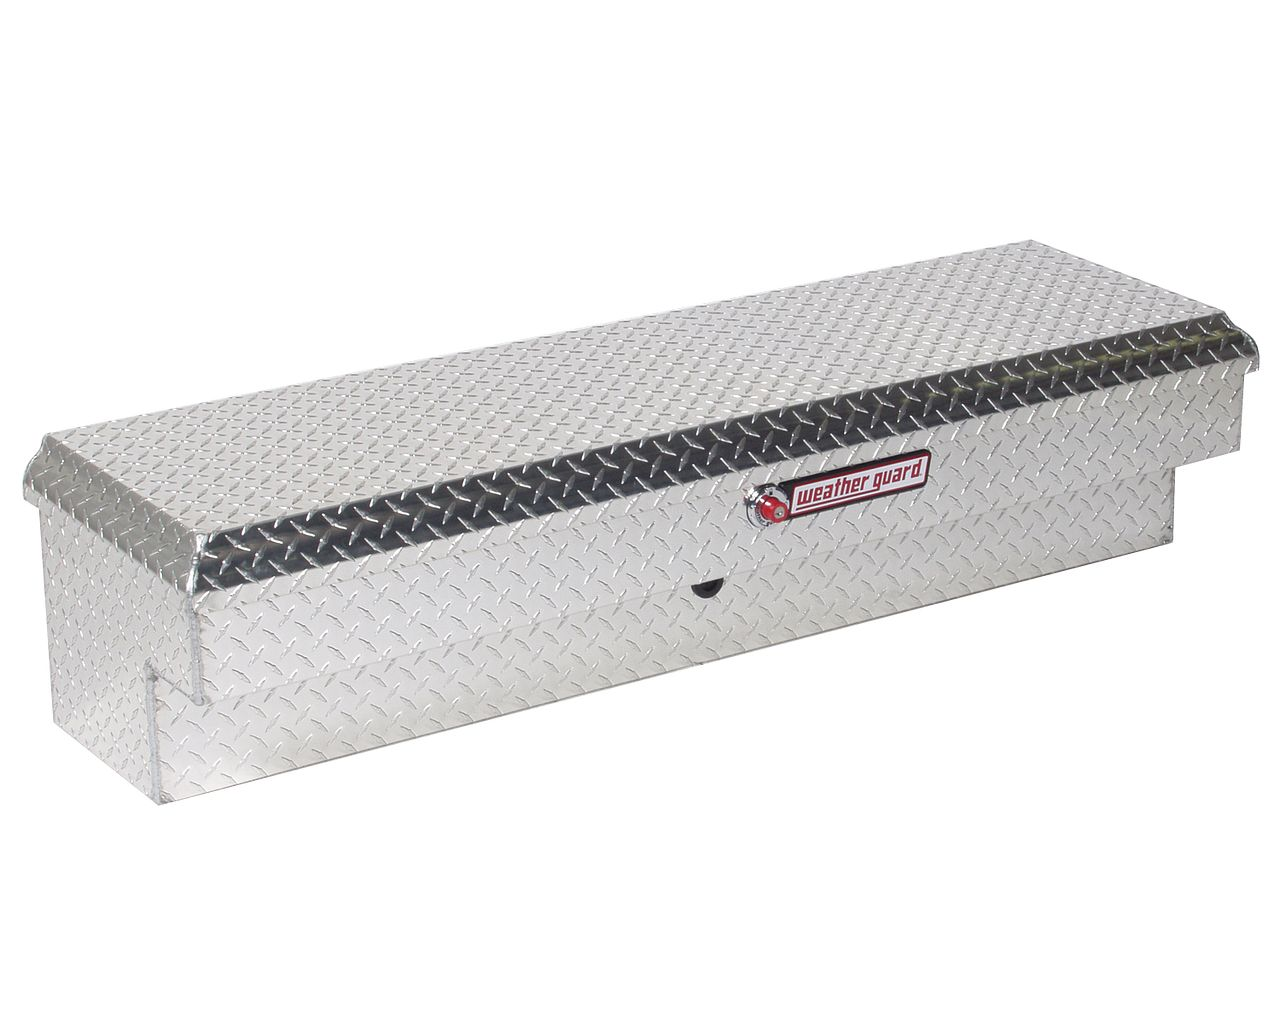 Weather Guard 174-0-01 Side Box - Aluminum